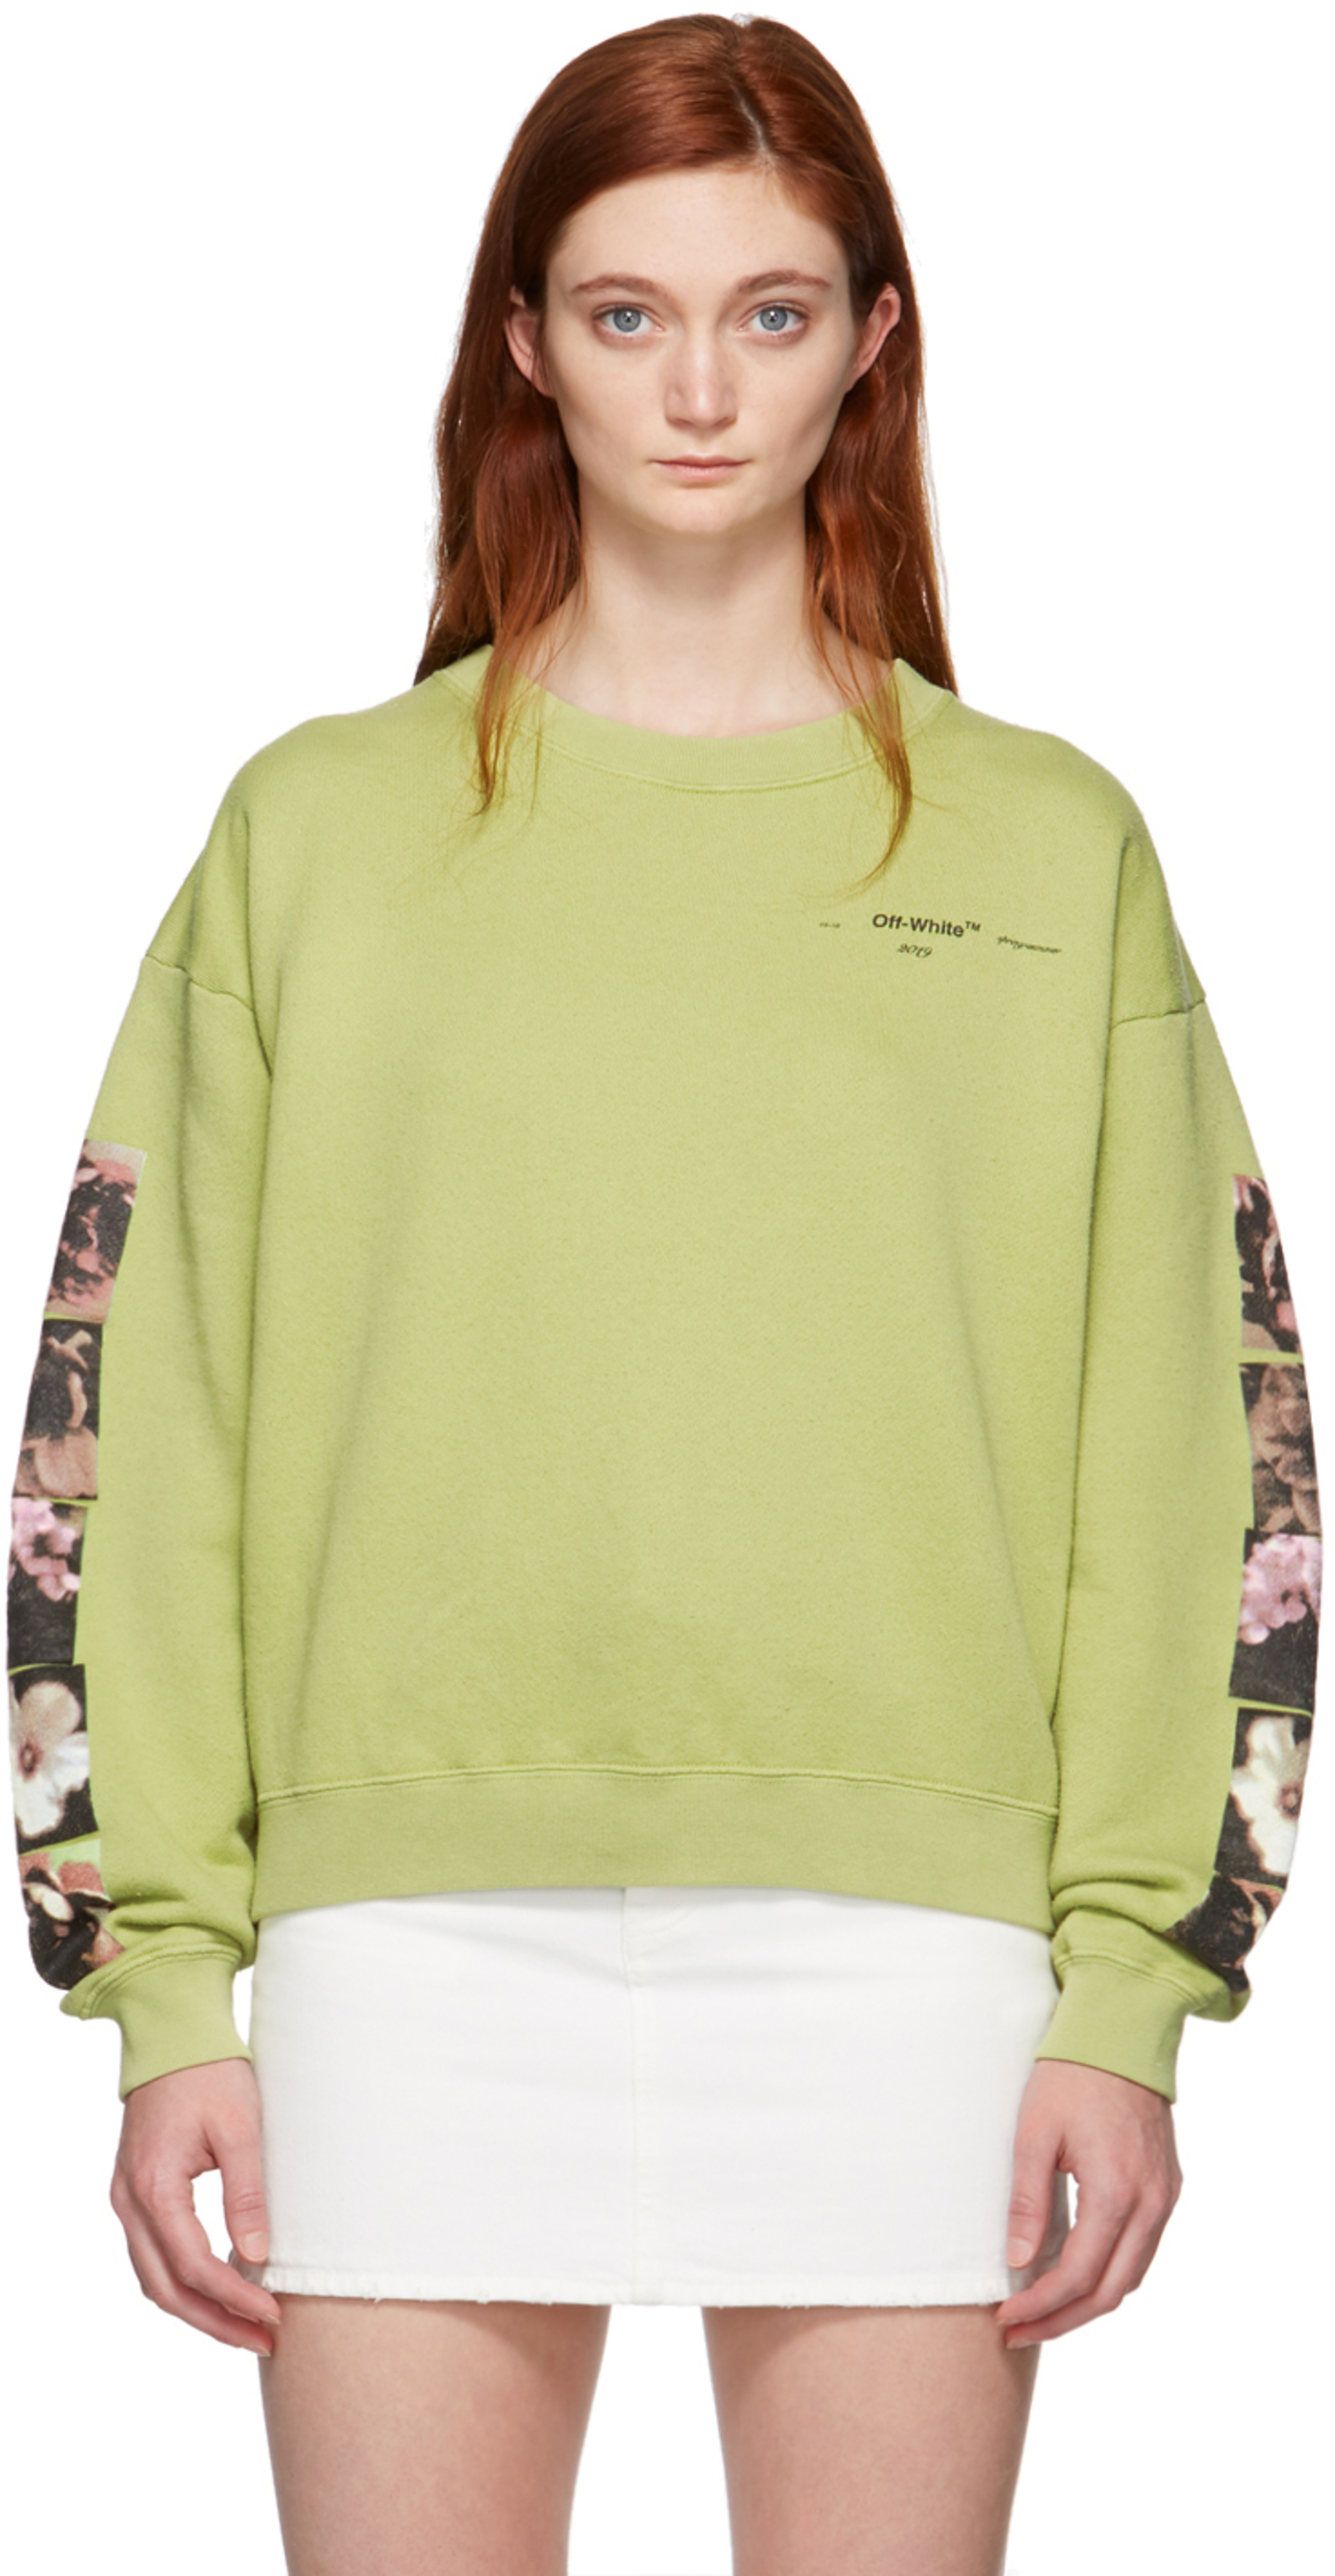 7b89504967 Off-white clothing for Women